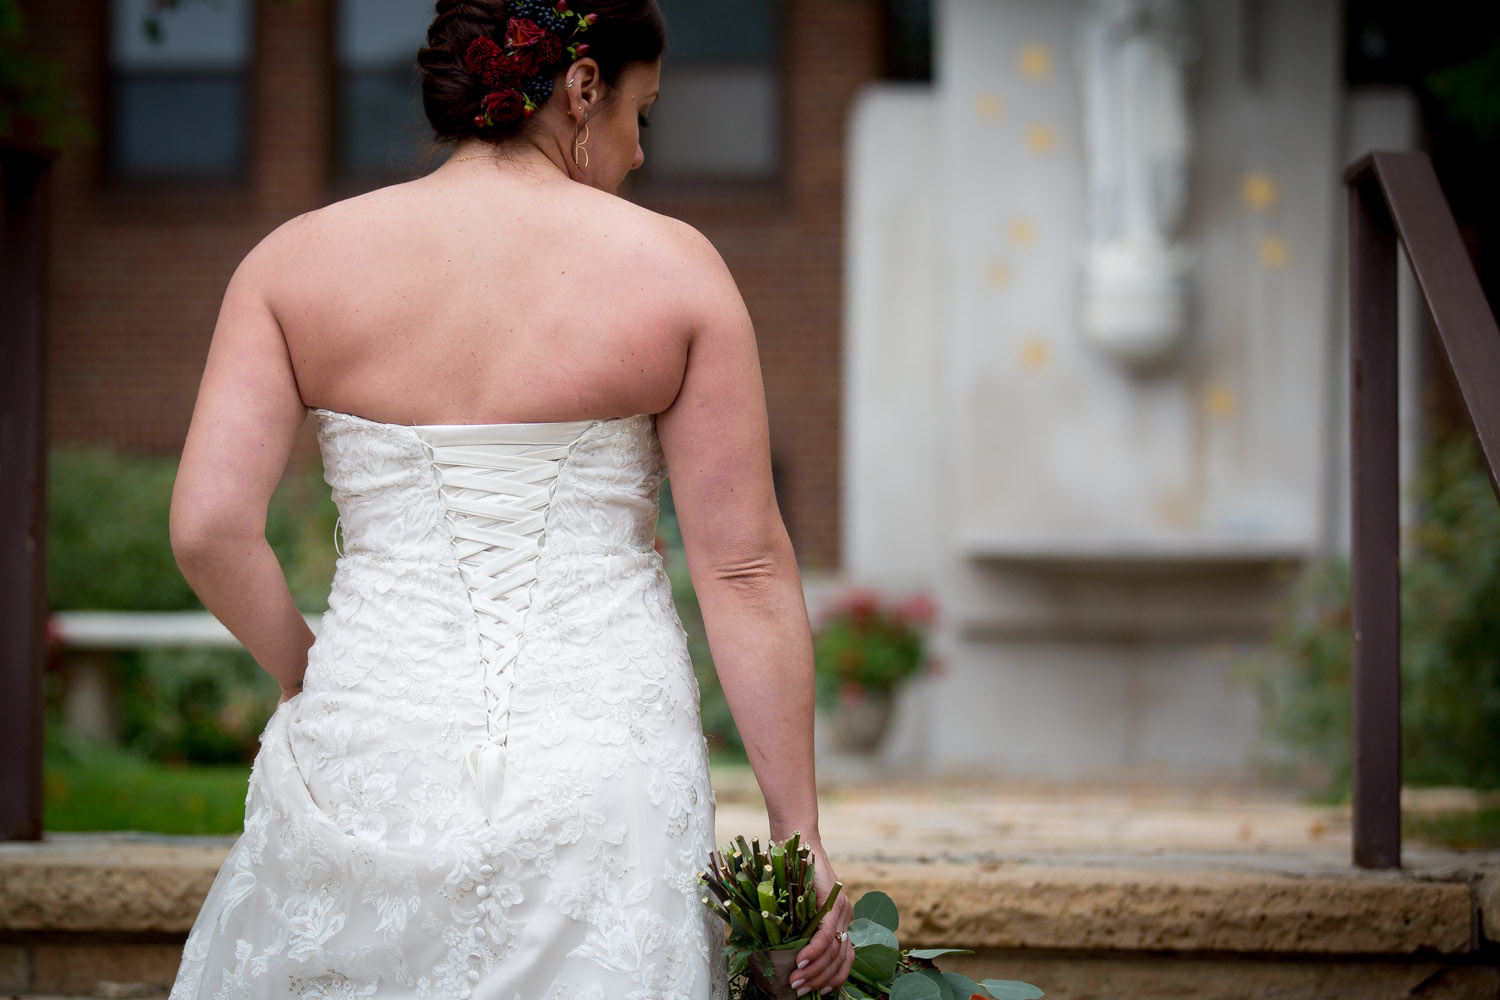 10-relaxed-fun-casual-bridal-portraits-back-of-the-dress-mn-wedding-photographer-mahonen-photography.jpg